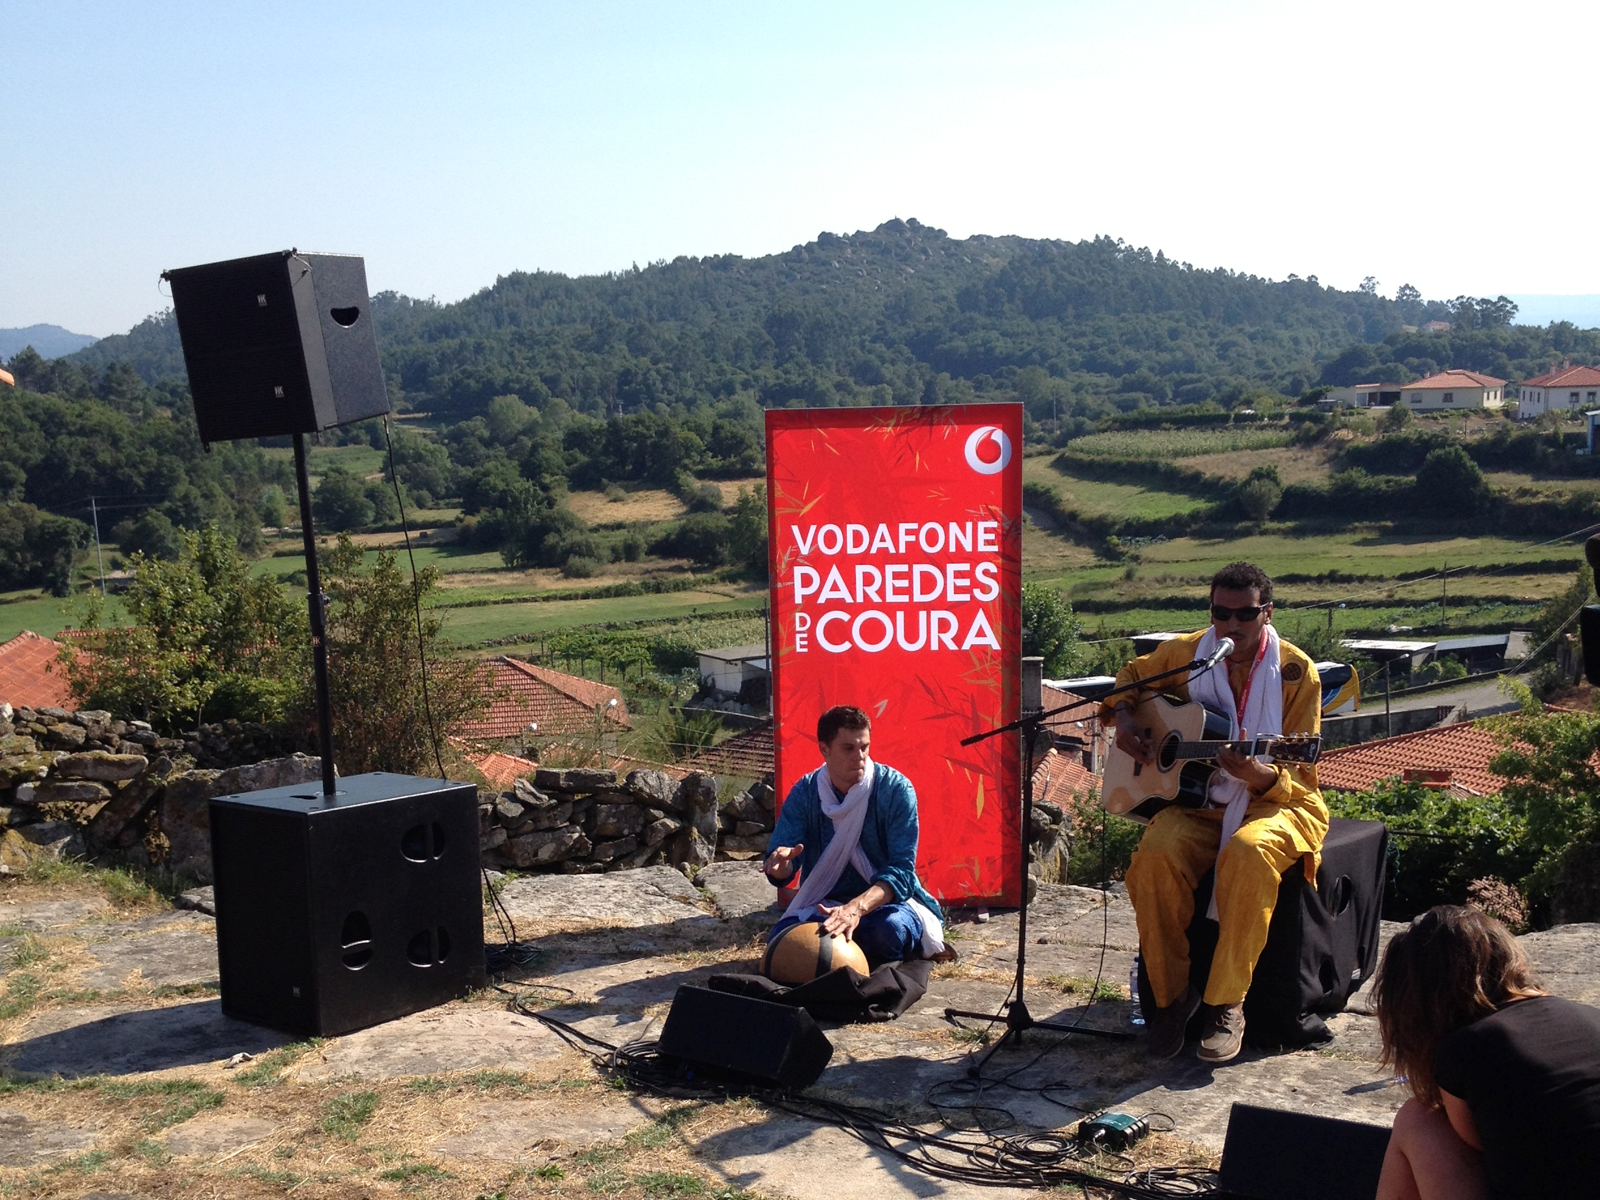 vodafone music sessions o cartaz secreto do vodafone mexefest. Black Bedroom Furniture Sets. Home Design Ideas